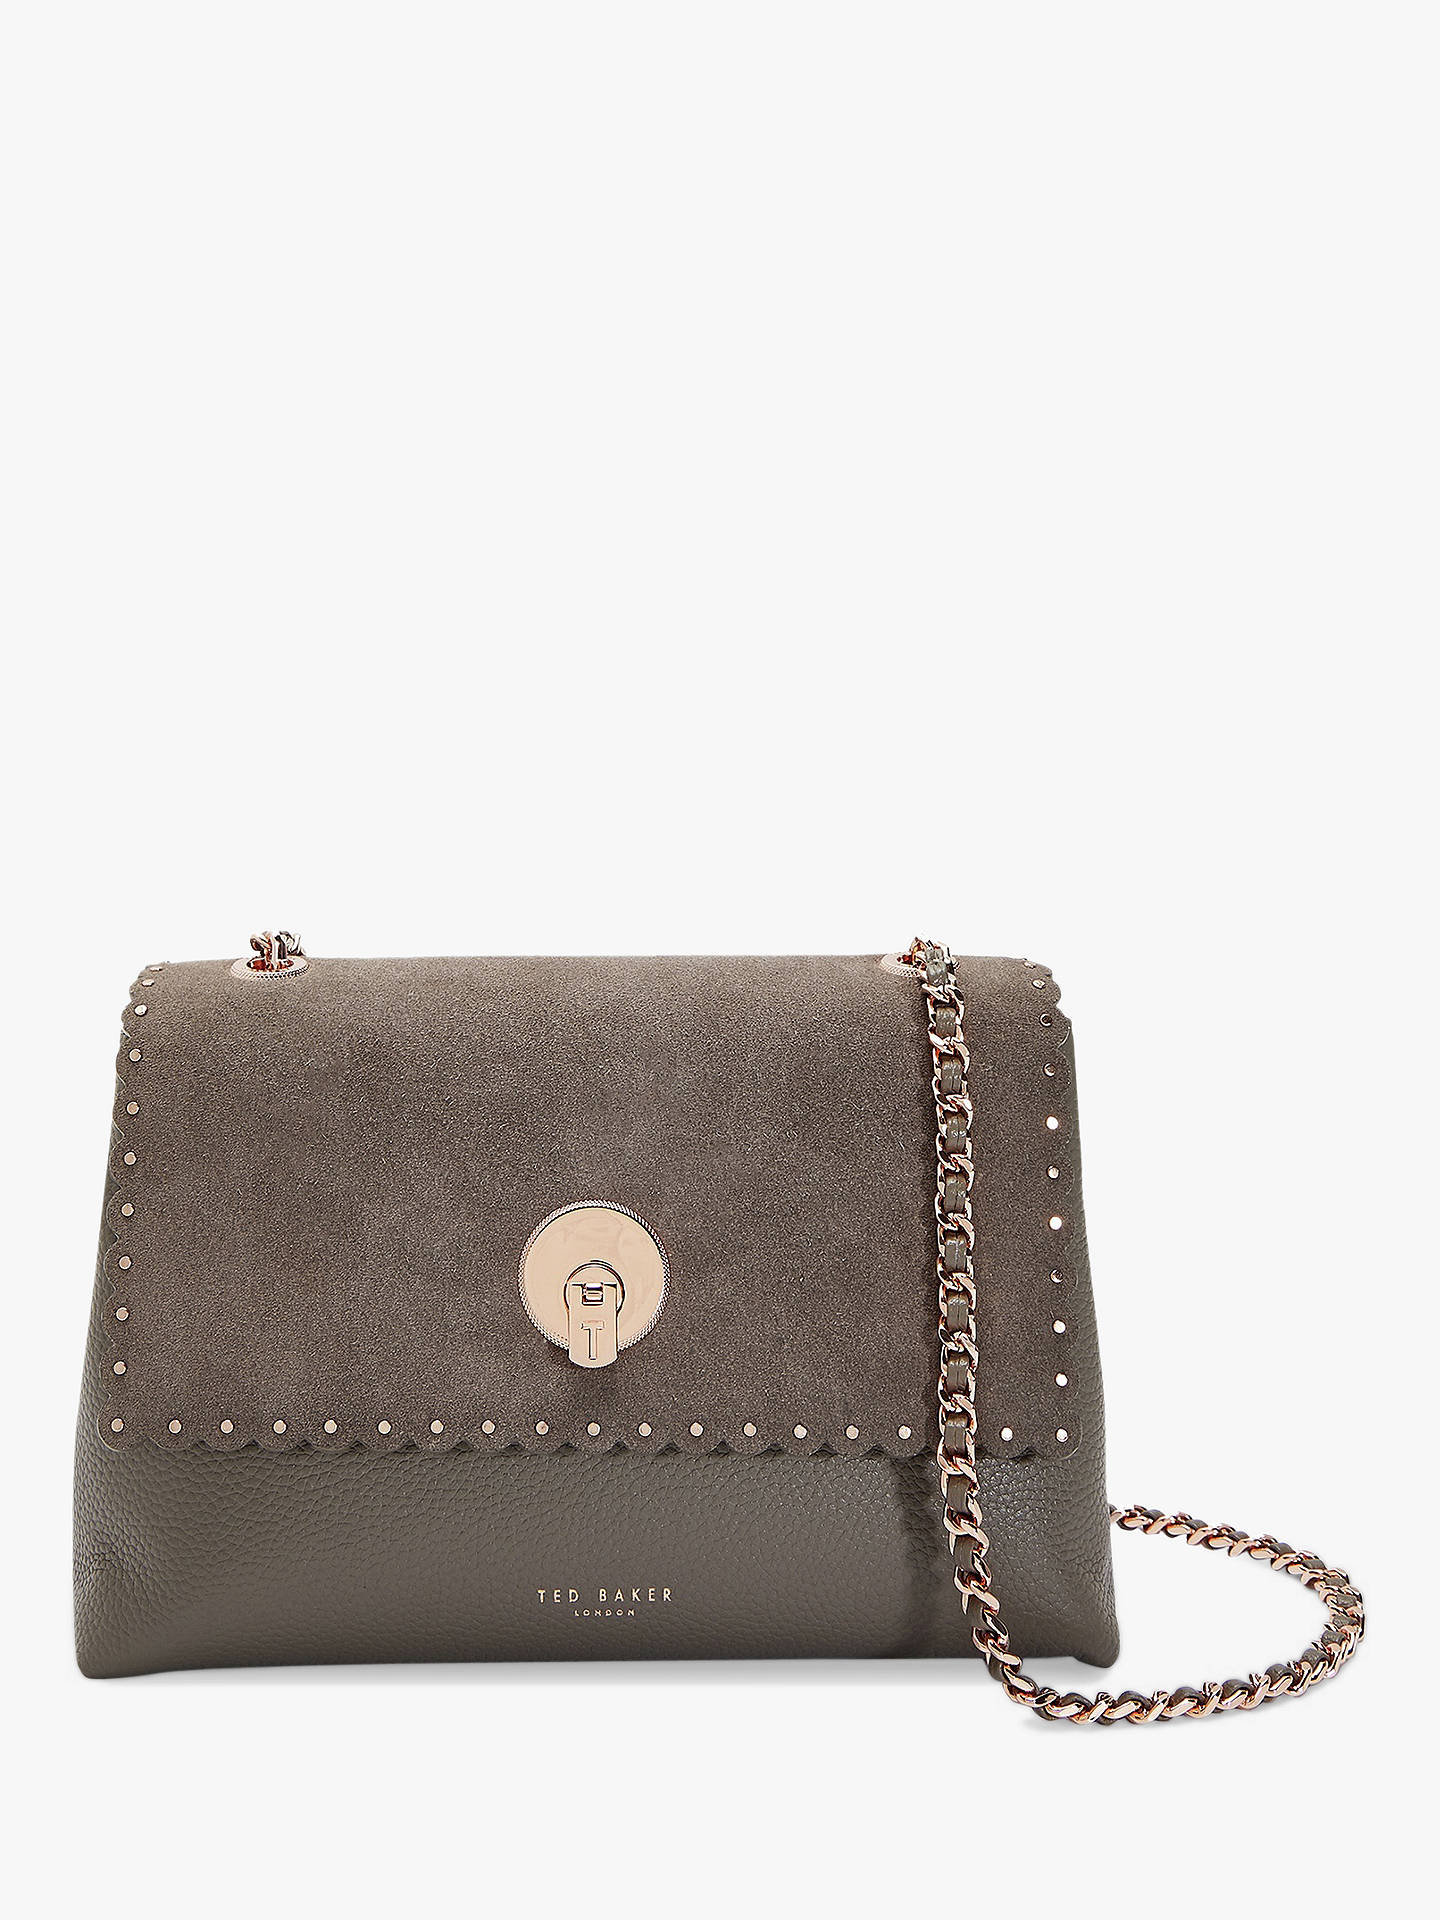 ad30191628bd Ted Baker Sultane Lock Detail Leather Cross Body Bag at John Lewis ...